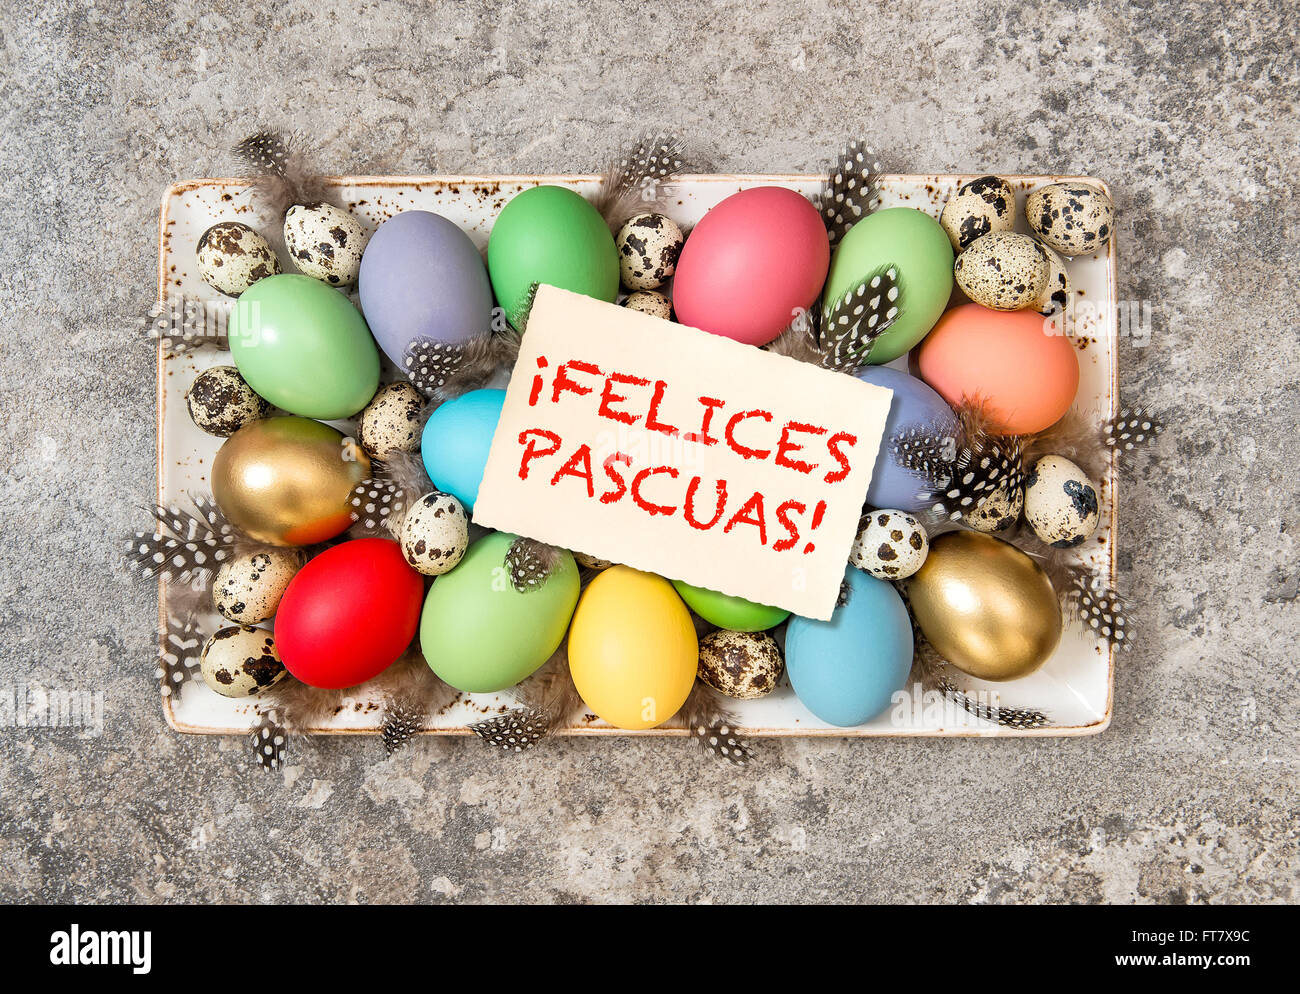 Felices pascuas stock photos felices pascuas stock images alamy easter eggs decoration vintage toned greetings card felices pascuas happy easter spanish m4hsunfo